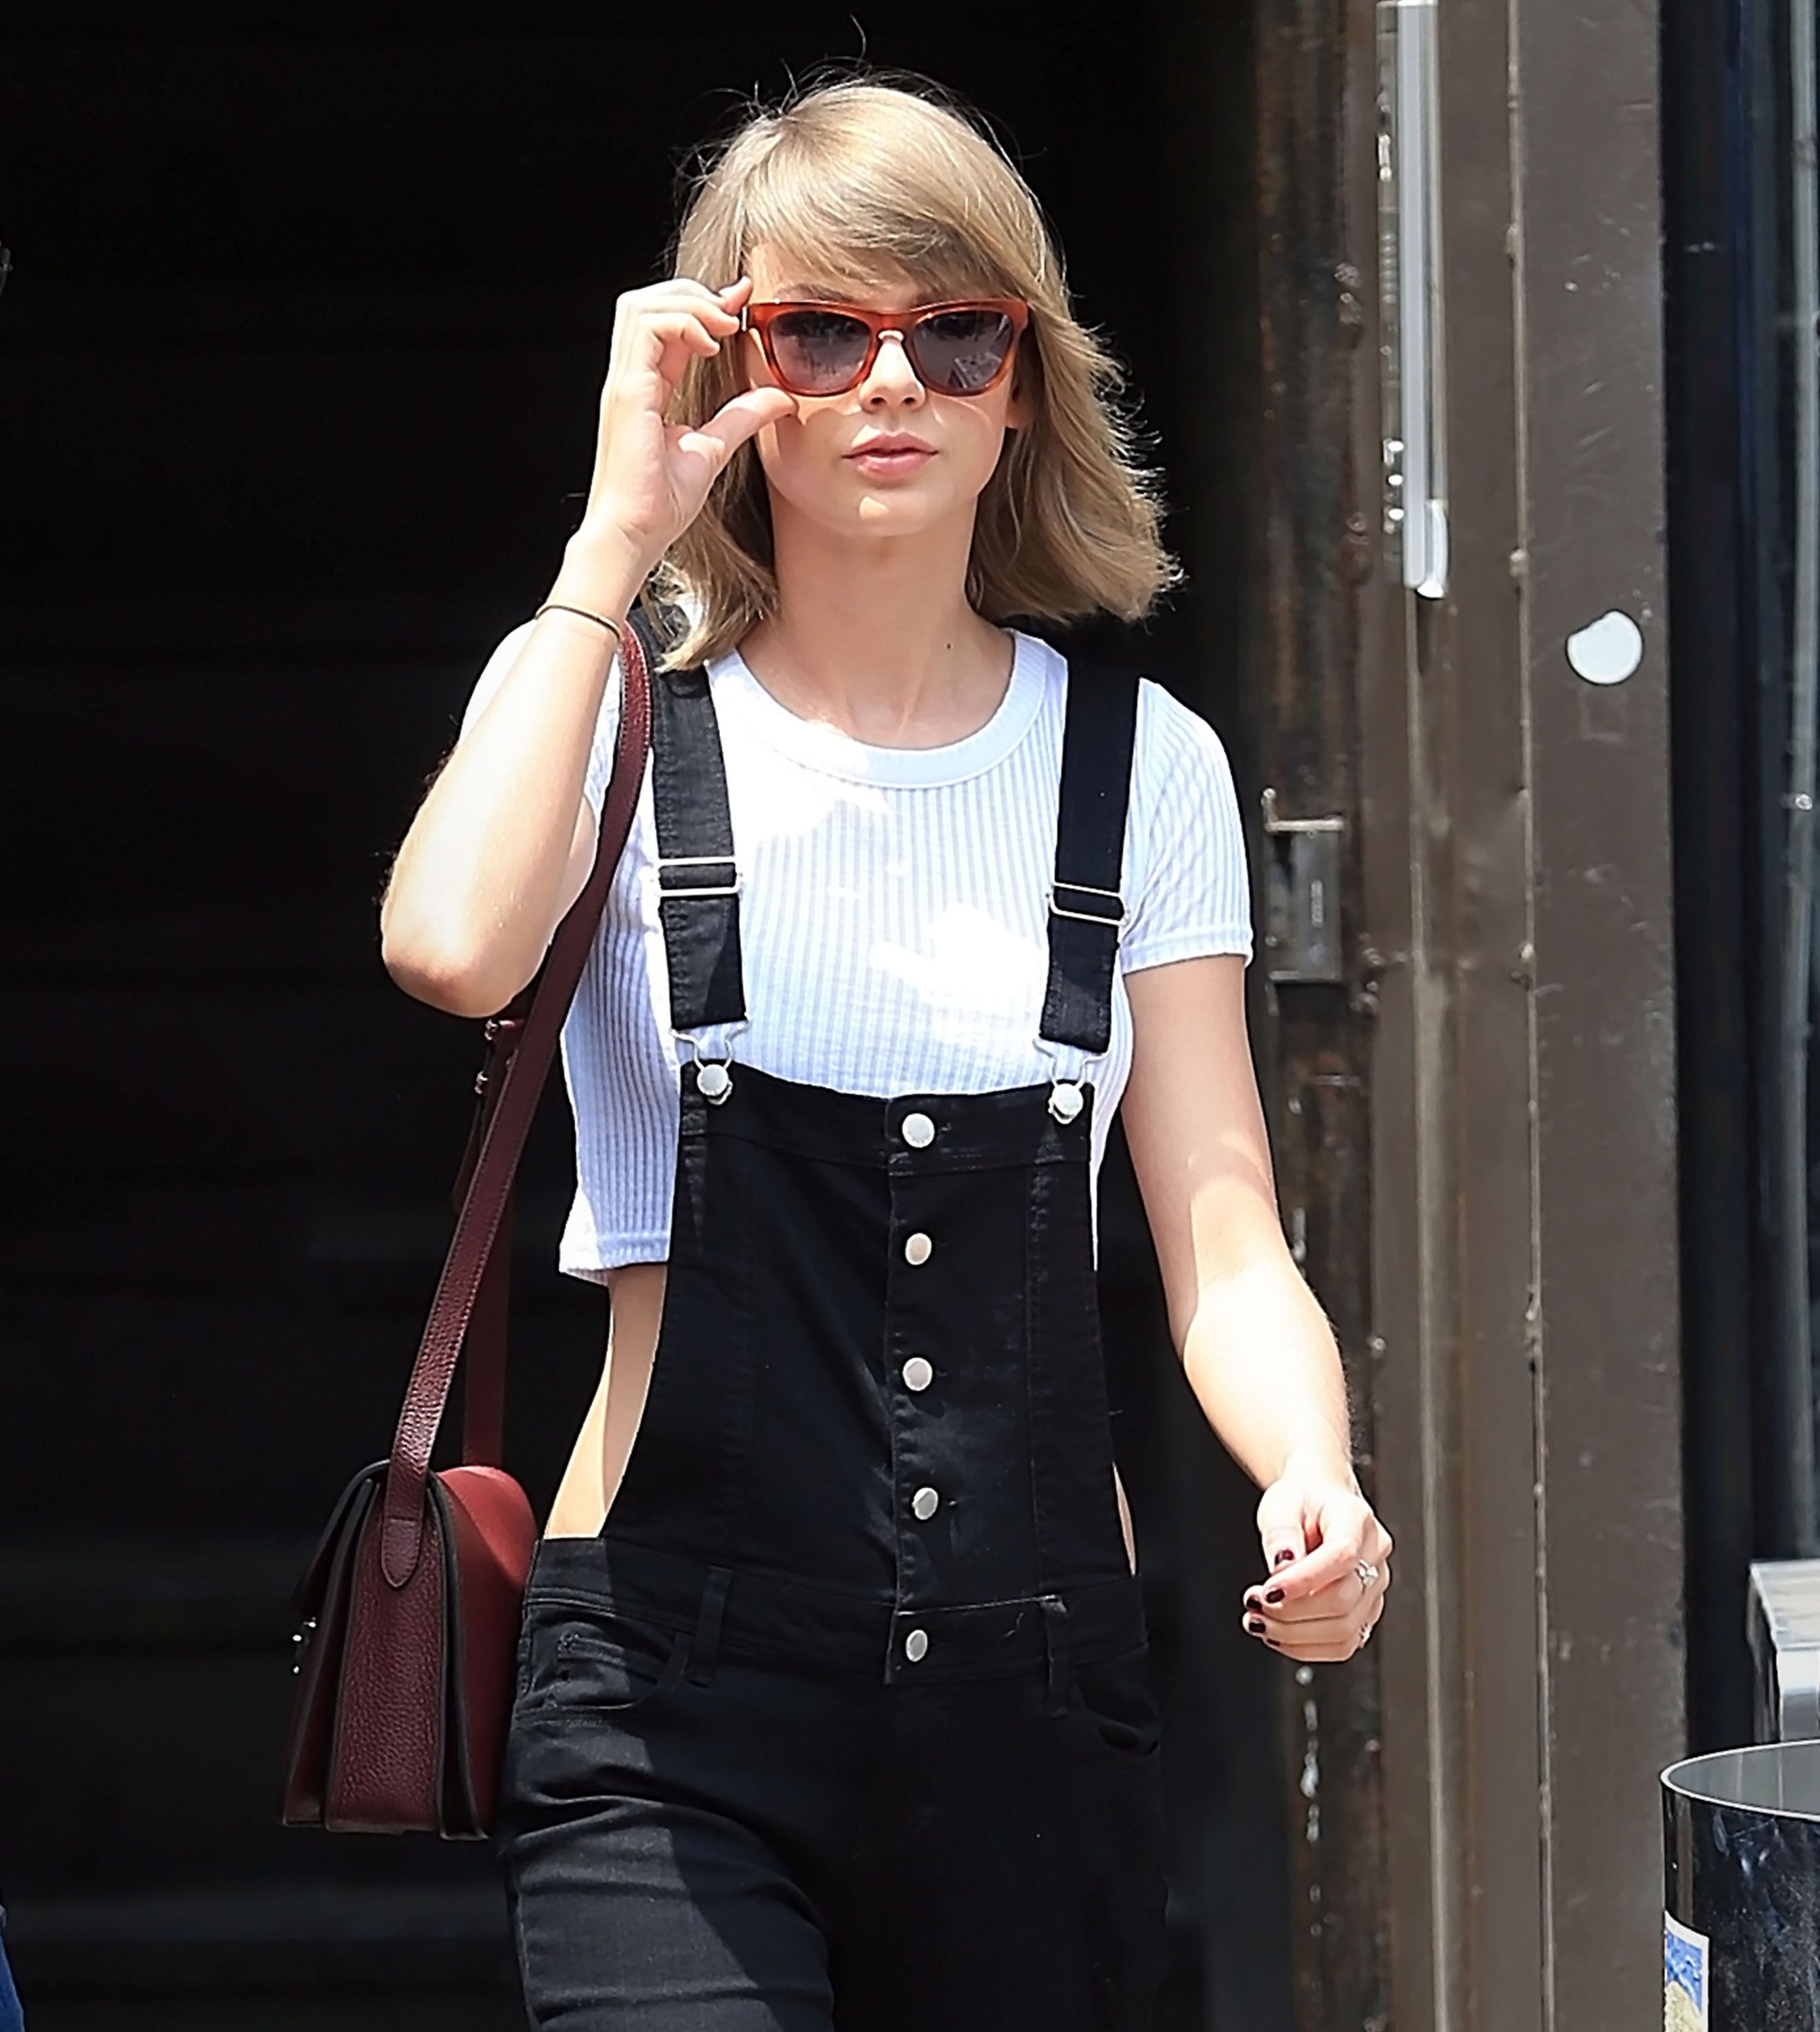 Watch Taylor Swift Avoid The Paparazzi By Hiking A Trail Backwards